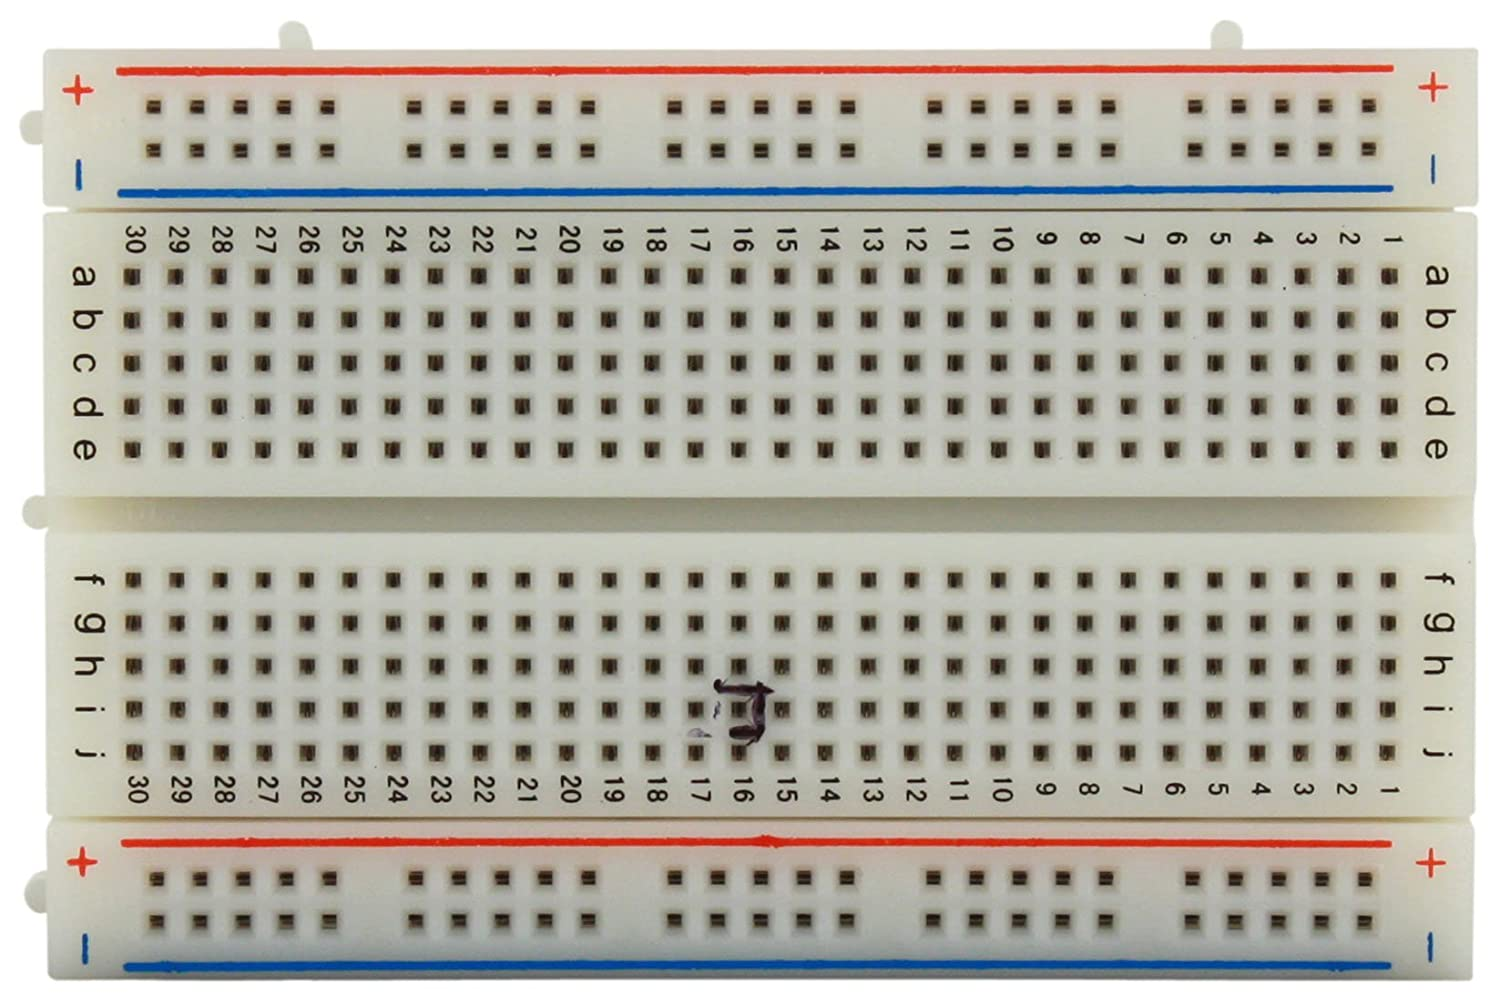 Discount Global Specialties GS-400 Solderless Breadboard with Bus Strip, 400 Tie-Point, 3-19/64 Length x 1-25/64 Width Strip for sale h5rbrZSU